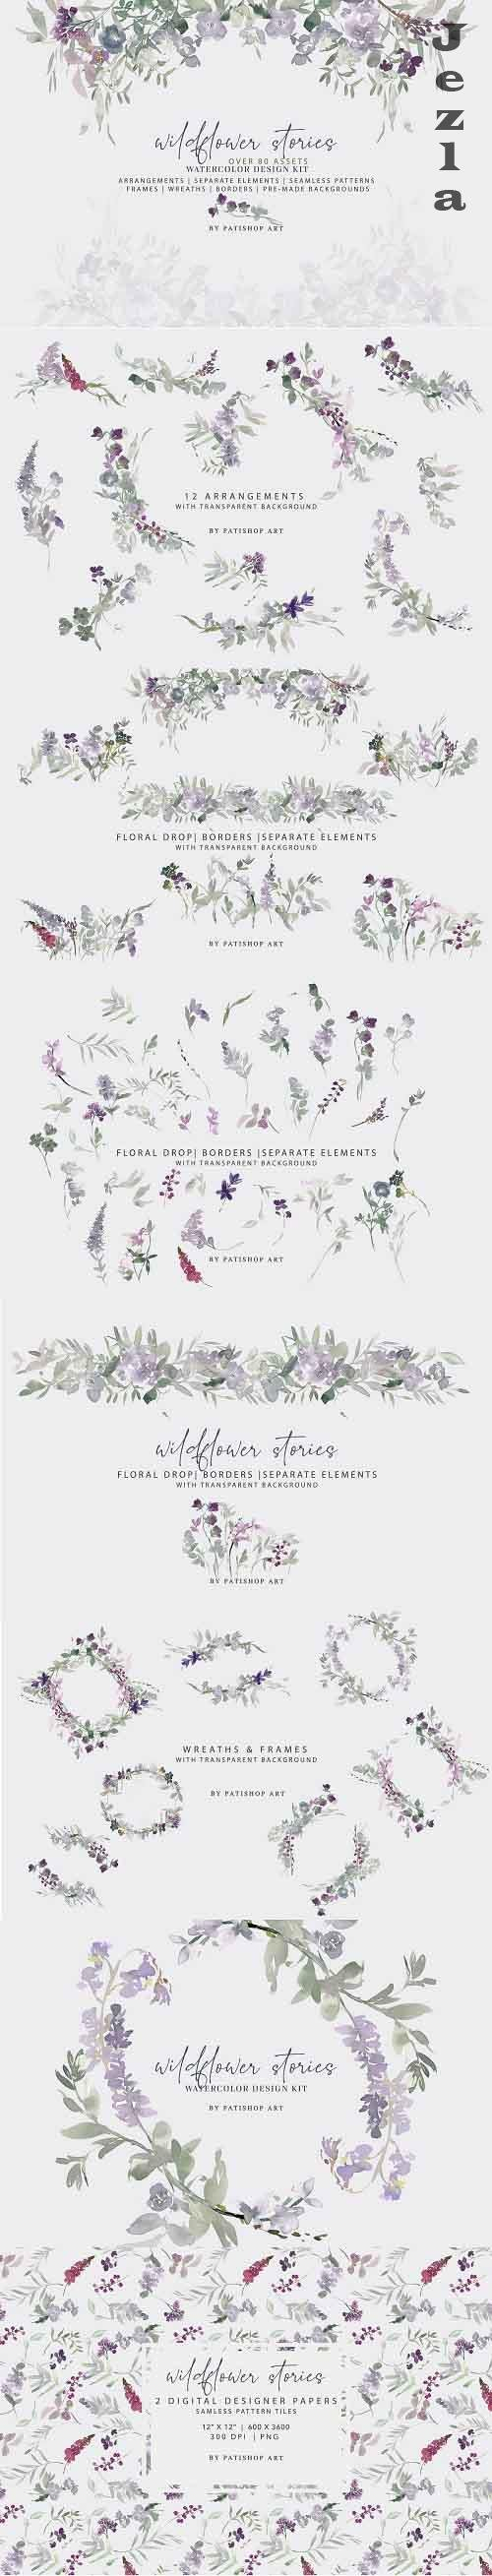 Watercolor Wildflower Clipart Set - 5133591